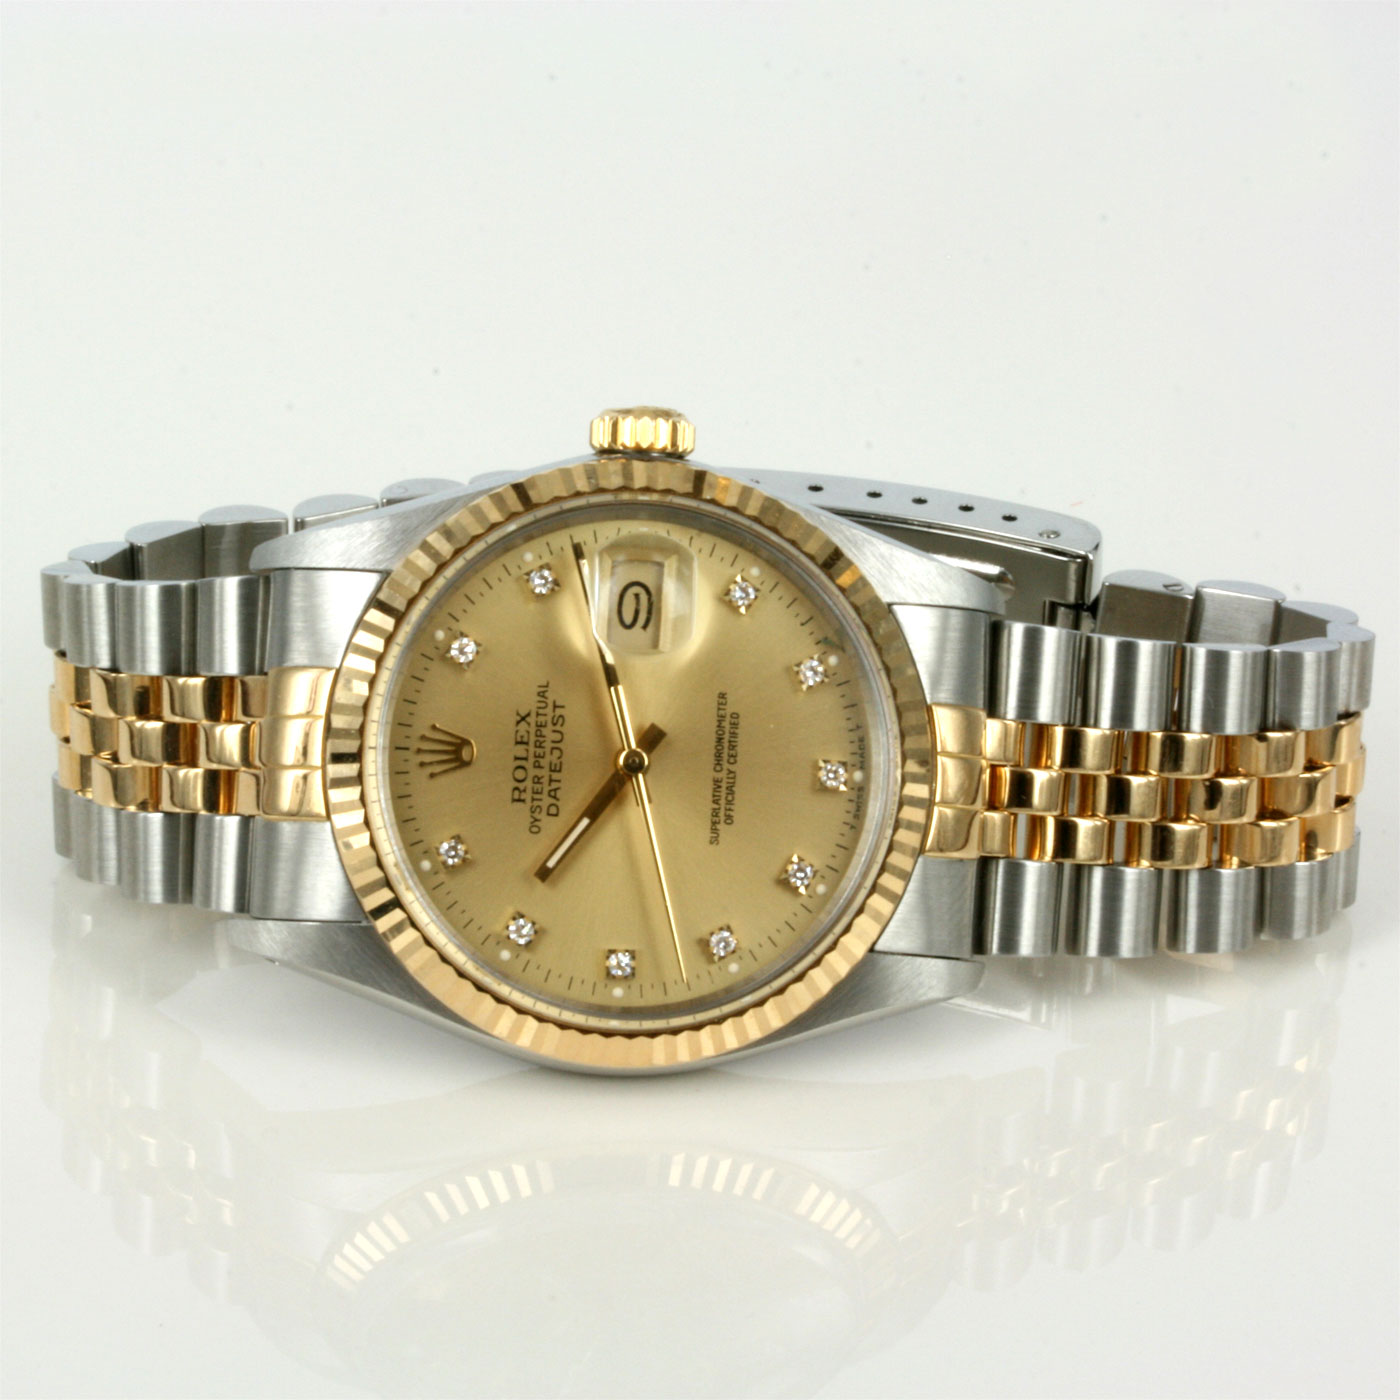 Buy gents diamond dial rolex oyster watch sold items sold rolex watches sydney kalmarantiques for Oyster watches